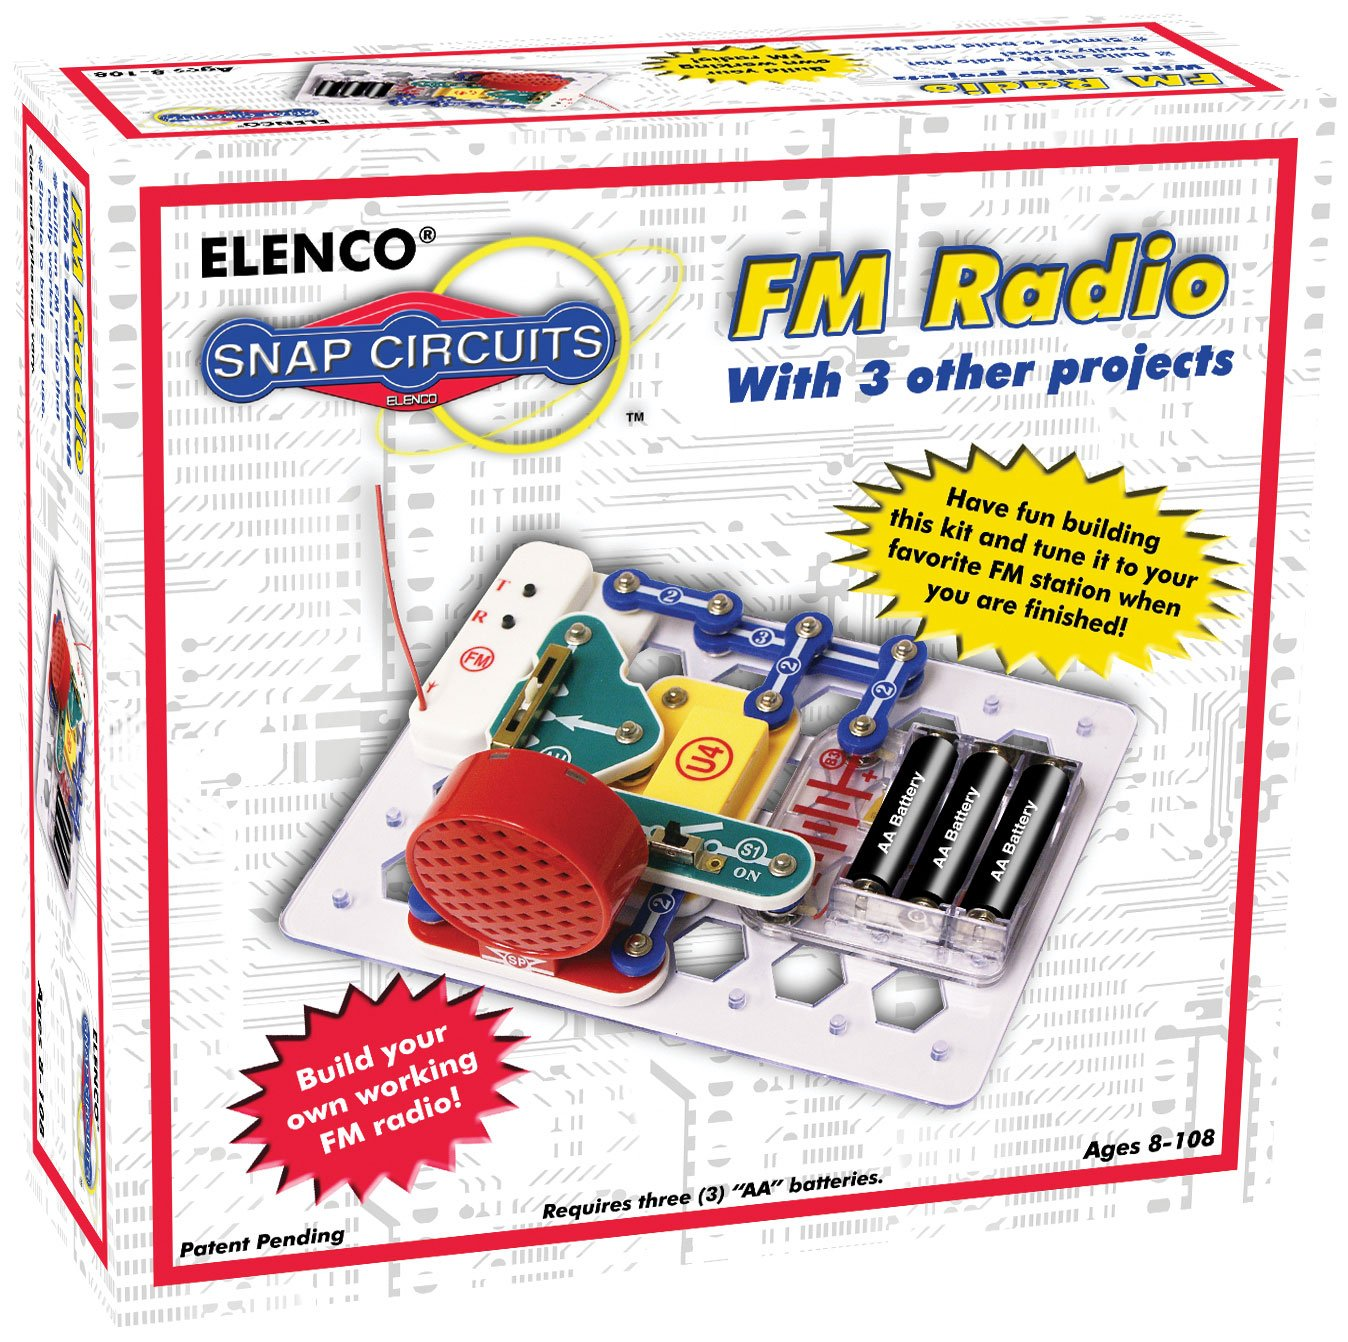 Snap Circuits Fm Radio Kit Toys Games Simple Crystal Schematic Free Image About Wiring Diagram And